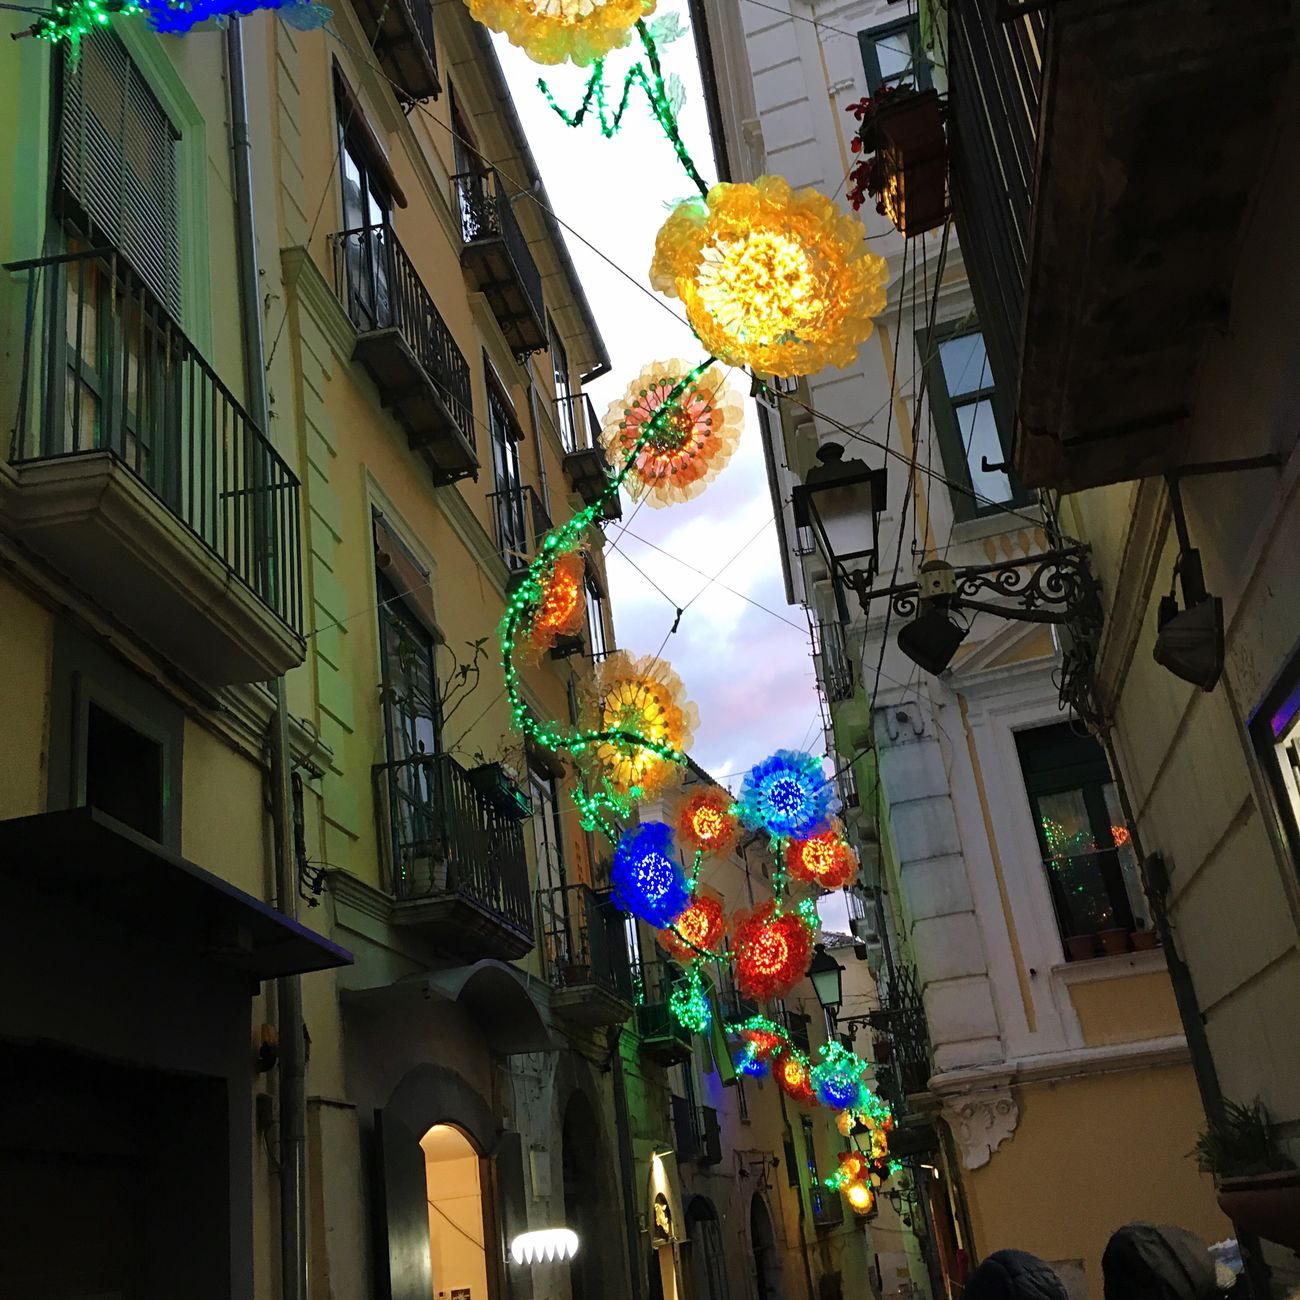 Adapted To The City Built Structure Building Exterior Architecture Low Angle View Hanging Multi Colored Street City Outdoors Variation Sky Illuminated No People Day